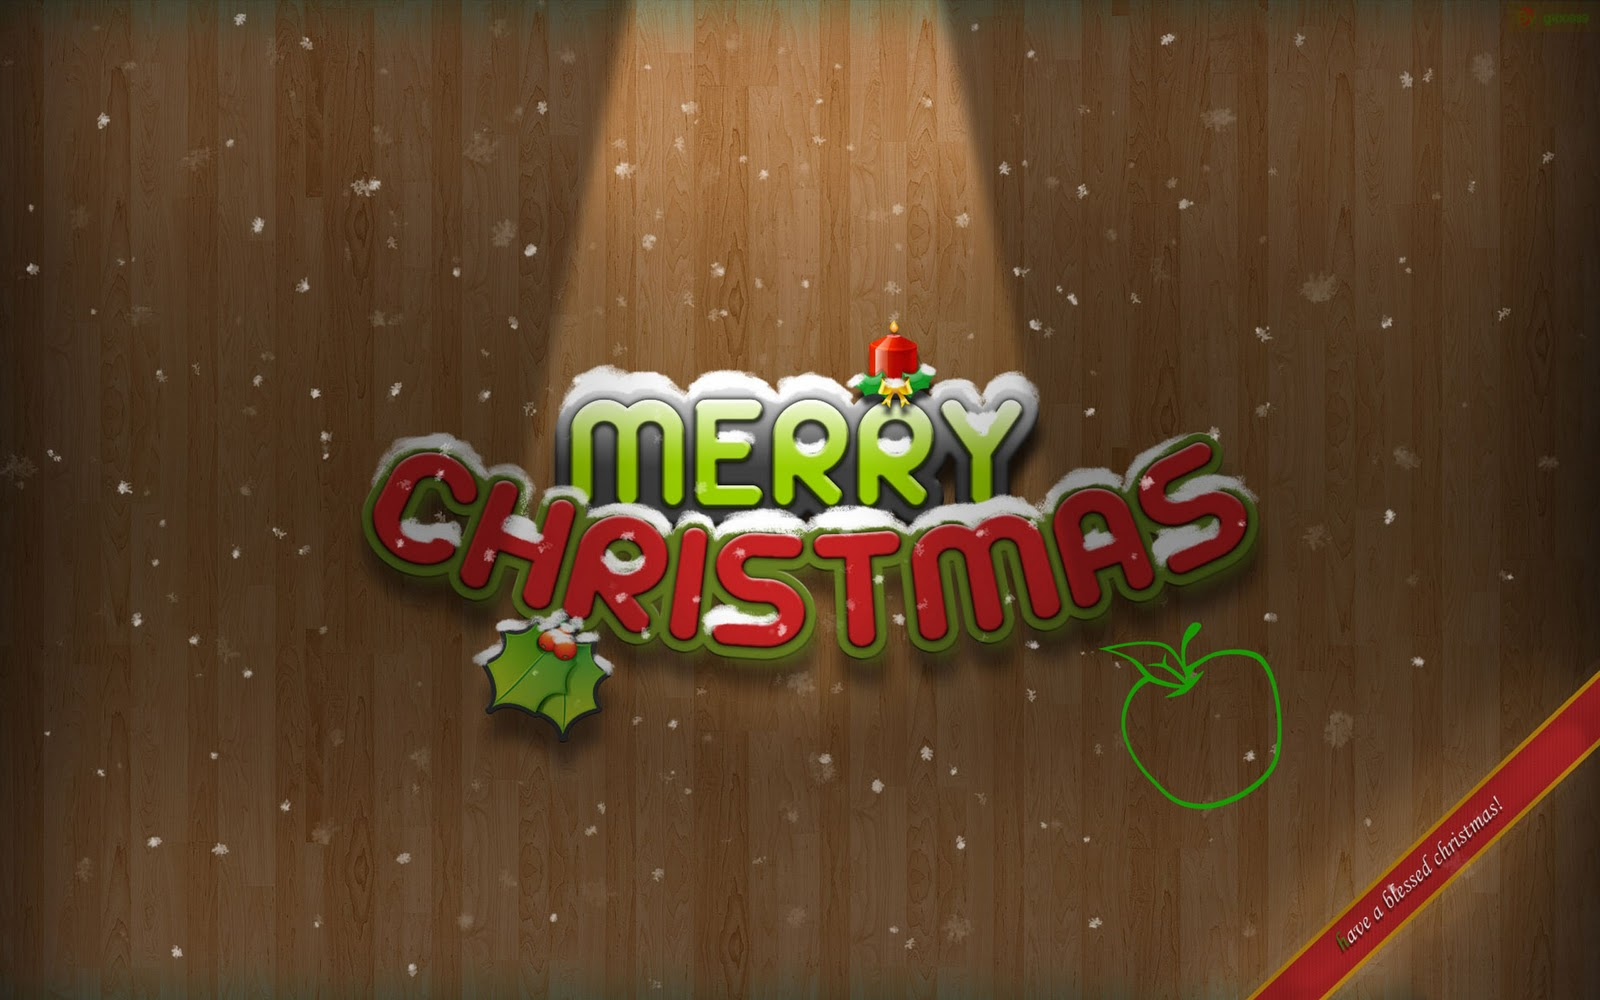 merry christmas desktop wallpaper free | christmaswallpapers18